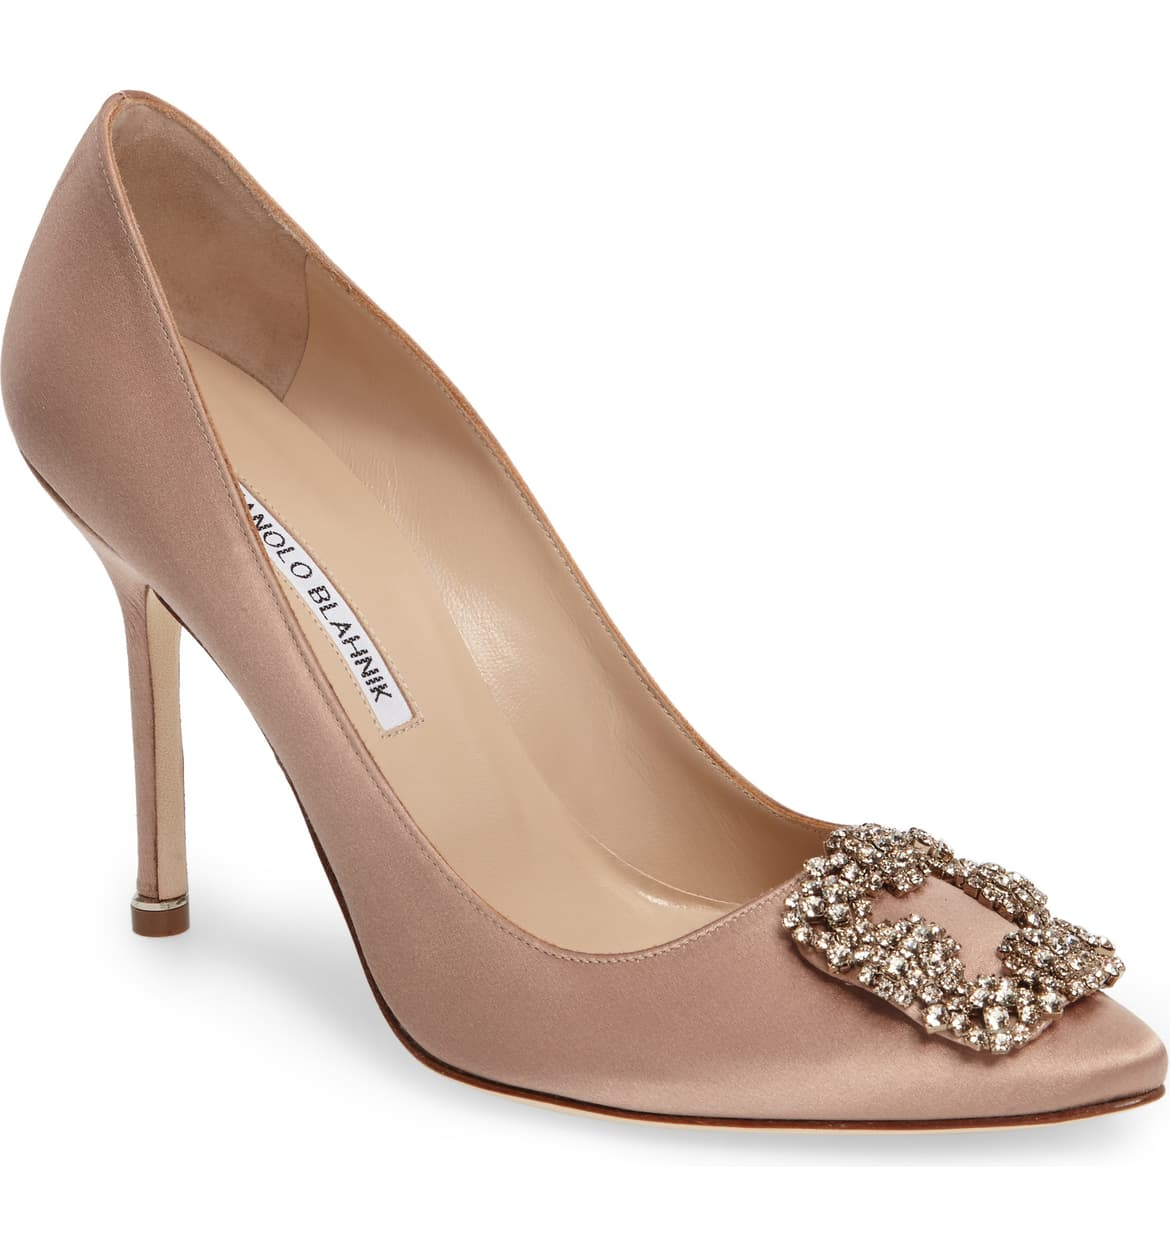 "<a  href=""https://shop.nordstrom.com/s/manolo-blahnik-hangisi-jewel-pump-women/3169518/full?origin=keywordsearch-personalizedsort&breadcrumb=Home%2FAll%20Results&color=flesh%20satin"" target=""_blank"" title=""https://shop.nordstrom.com/s/manolo-blahnik-hangisi-jewel-pump-women/3169518/full?origin=keywordsearch-personalizedsort&breadcrumb=Home%2FAll%20Results&color=flesh%20satin"">Blahnik 'Hangisi' Jewel Pump - $995</a>. From cozy to gold hued to tailored, Nordstrom has the hottest trends for getting glam this holiday season! (Credit: Nordstrom)"